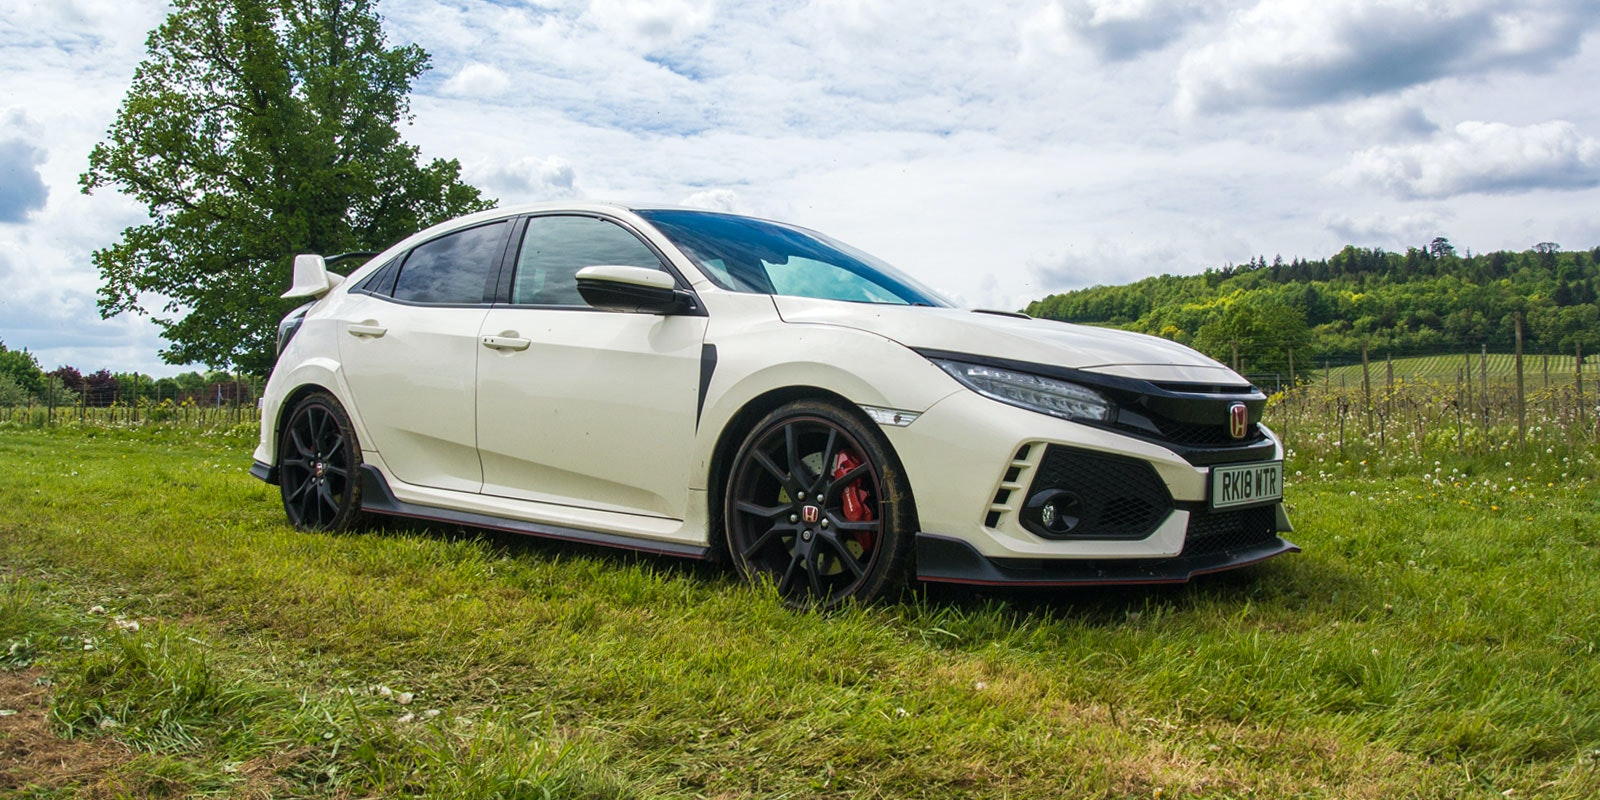 Honda civic type r white front parked sunday service lead 1.jpg?ixlib=rb 1.1